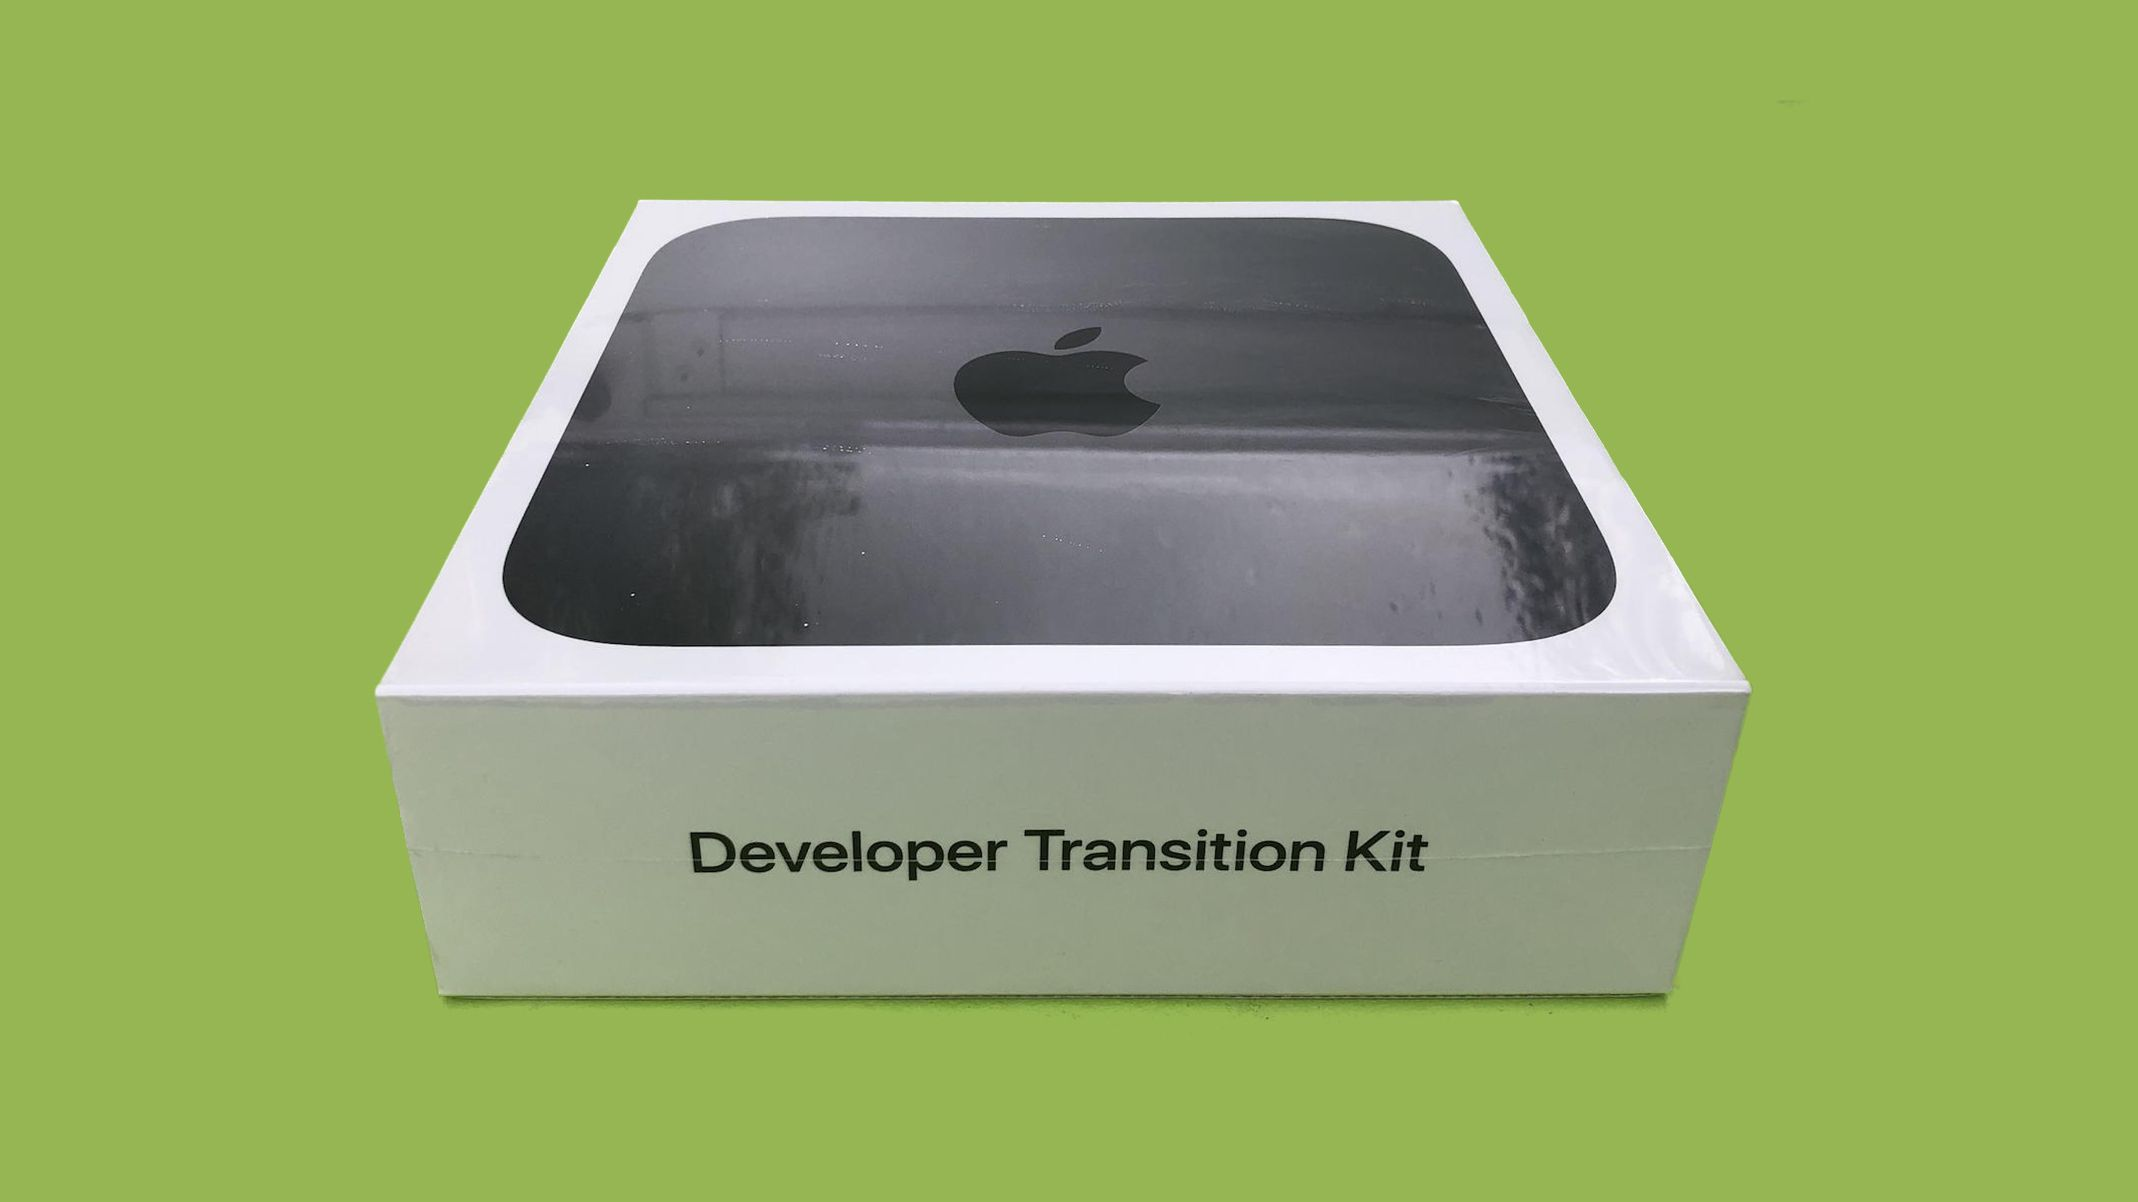 photo of Apple Requiring Developers to Return DTK Mac Minis by March 31 image